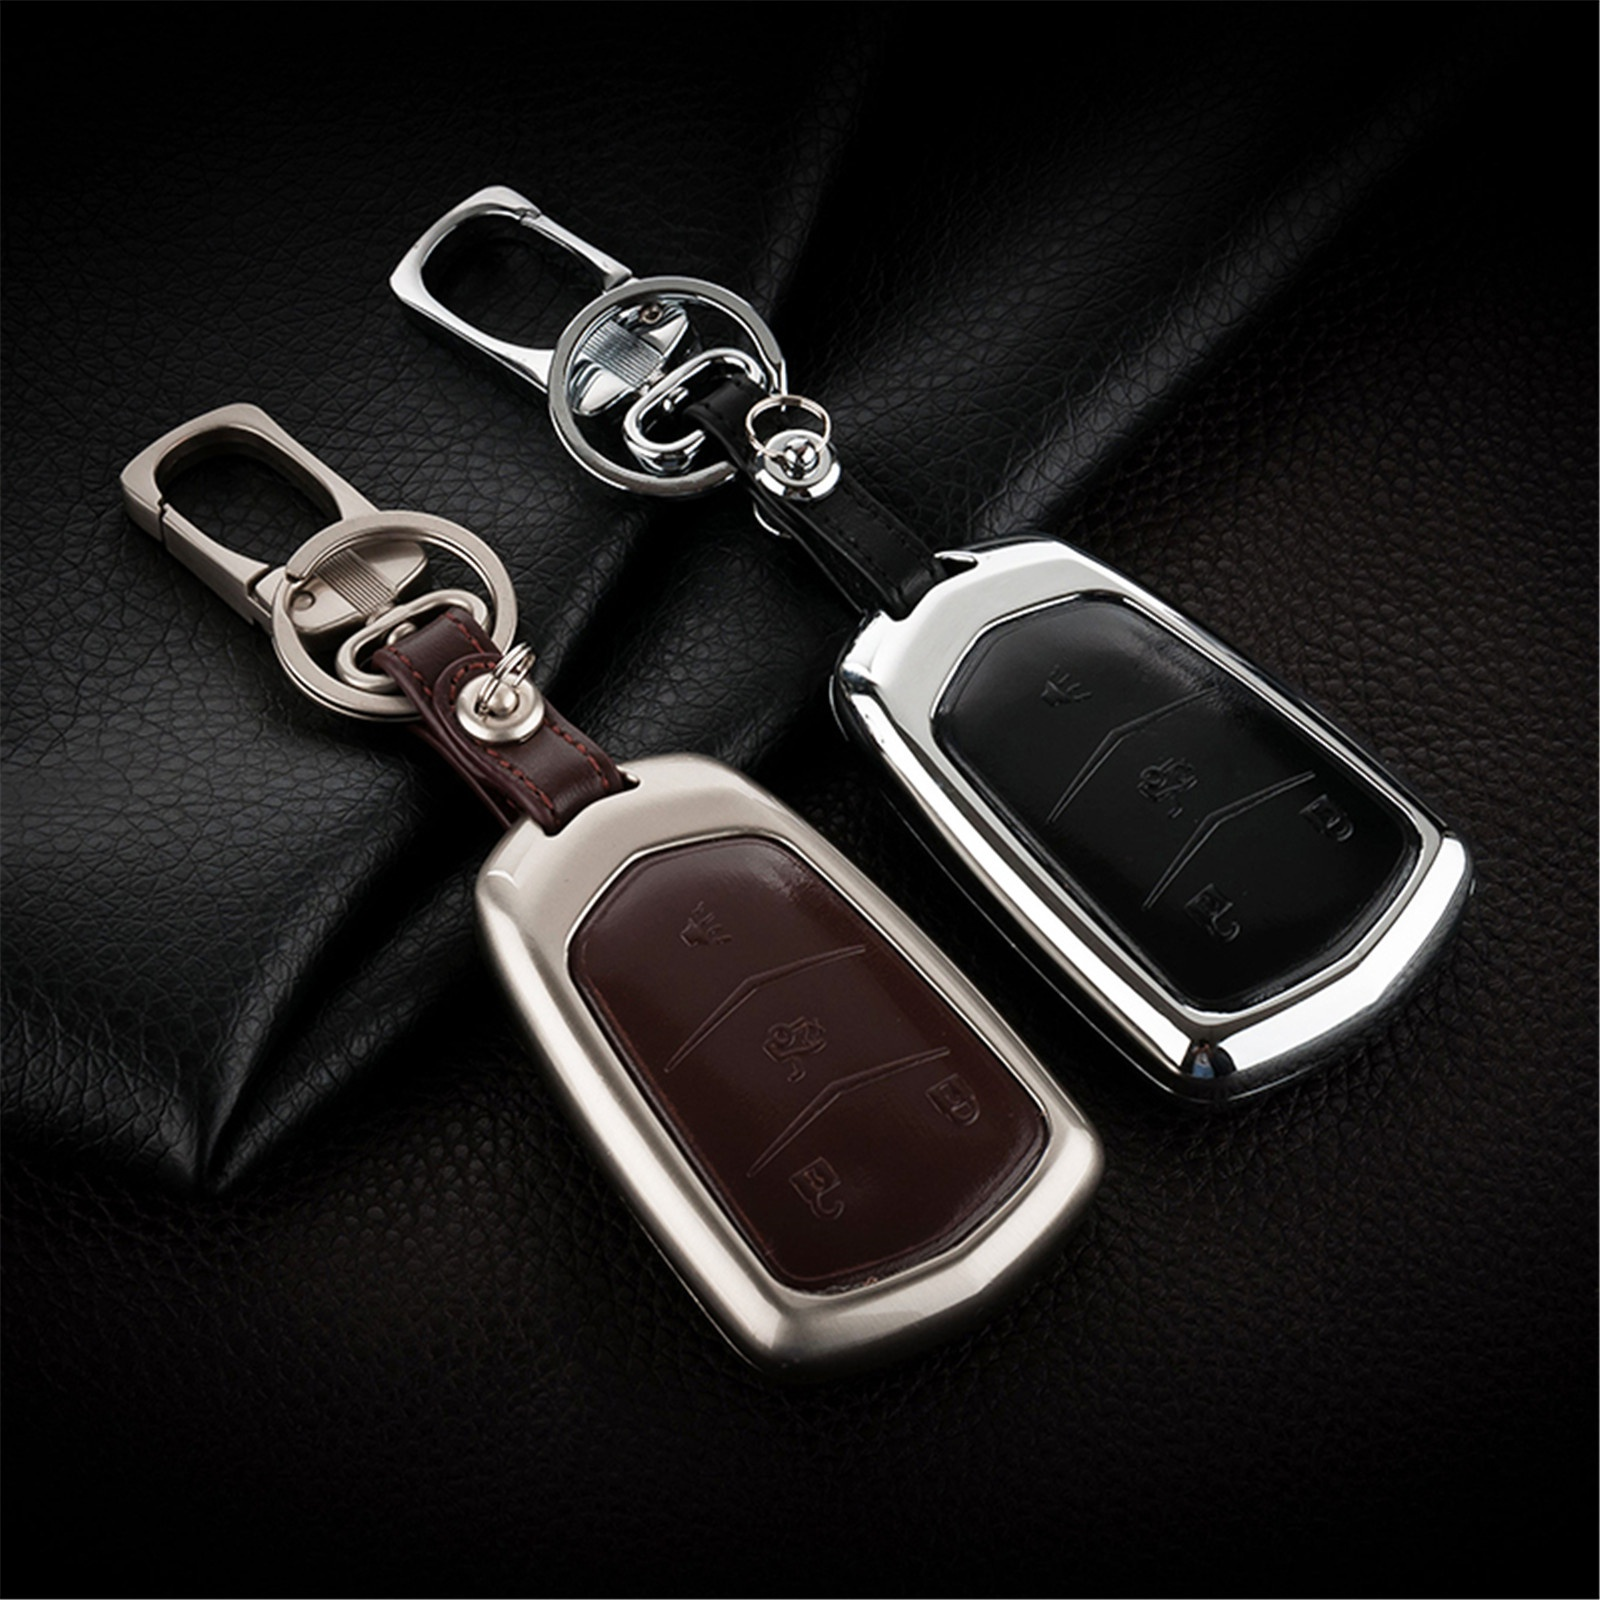 Cadillac Accessories Online Shopping  Buy Cadillac Accessories at